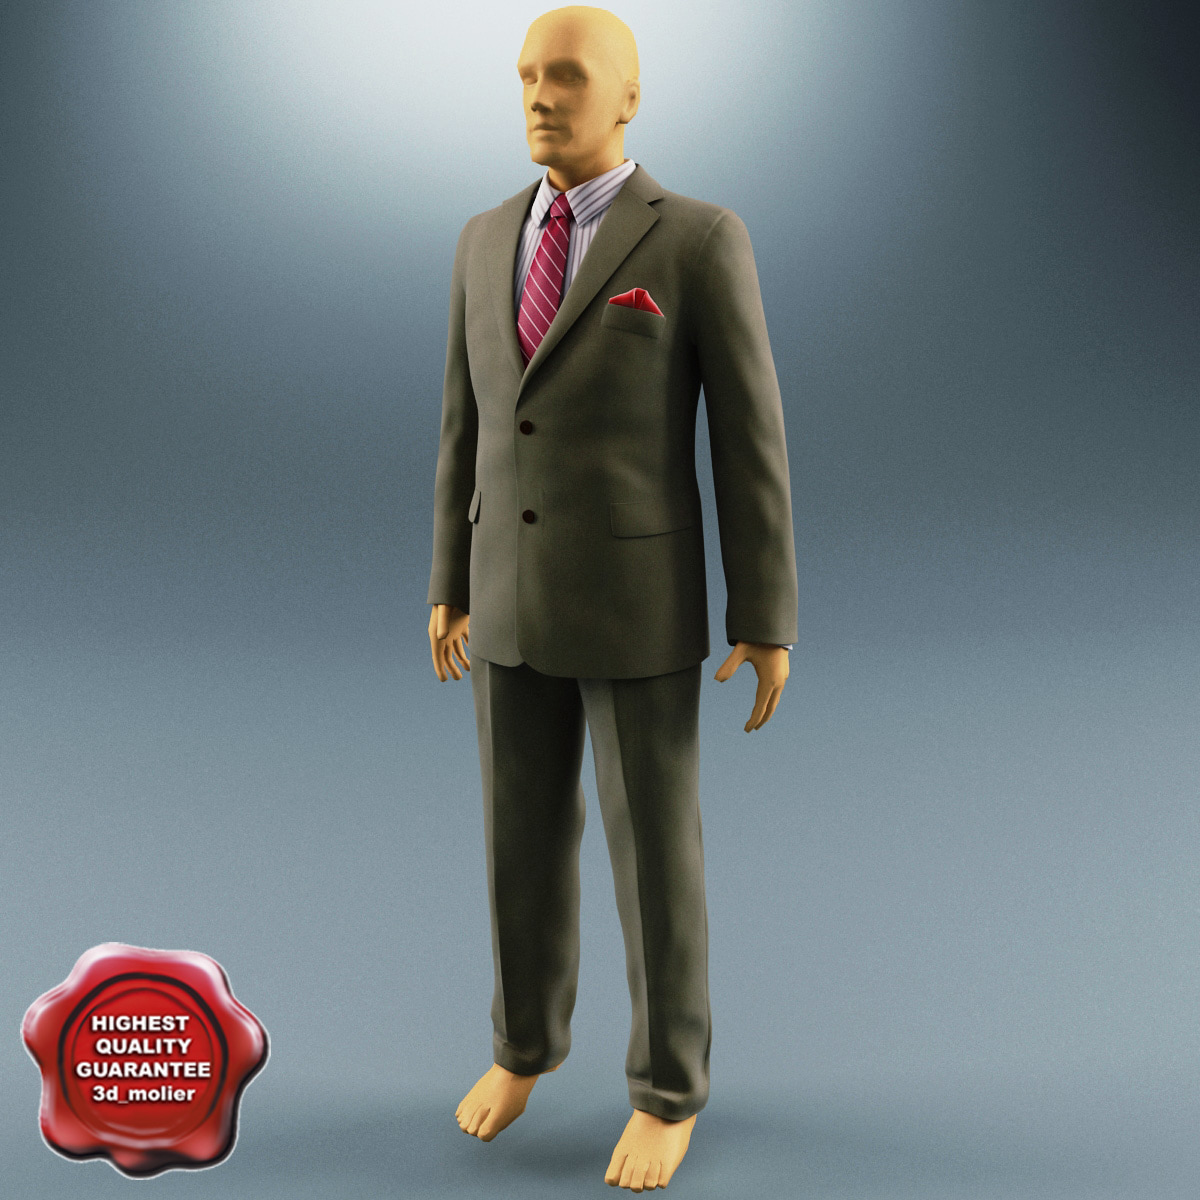 lightwave men suit